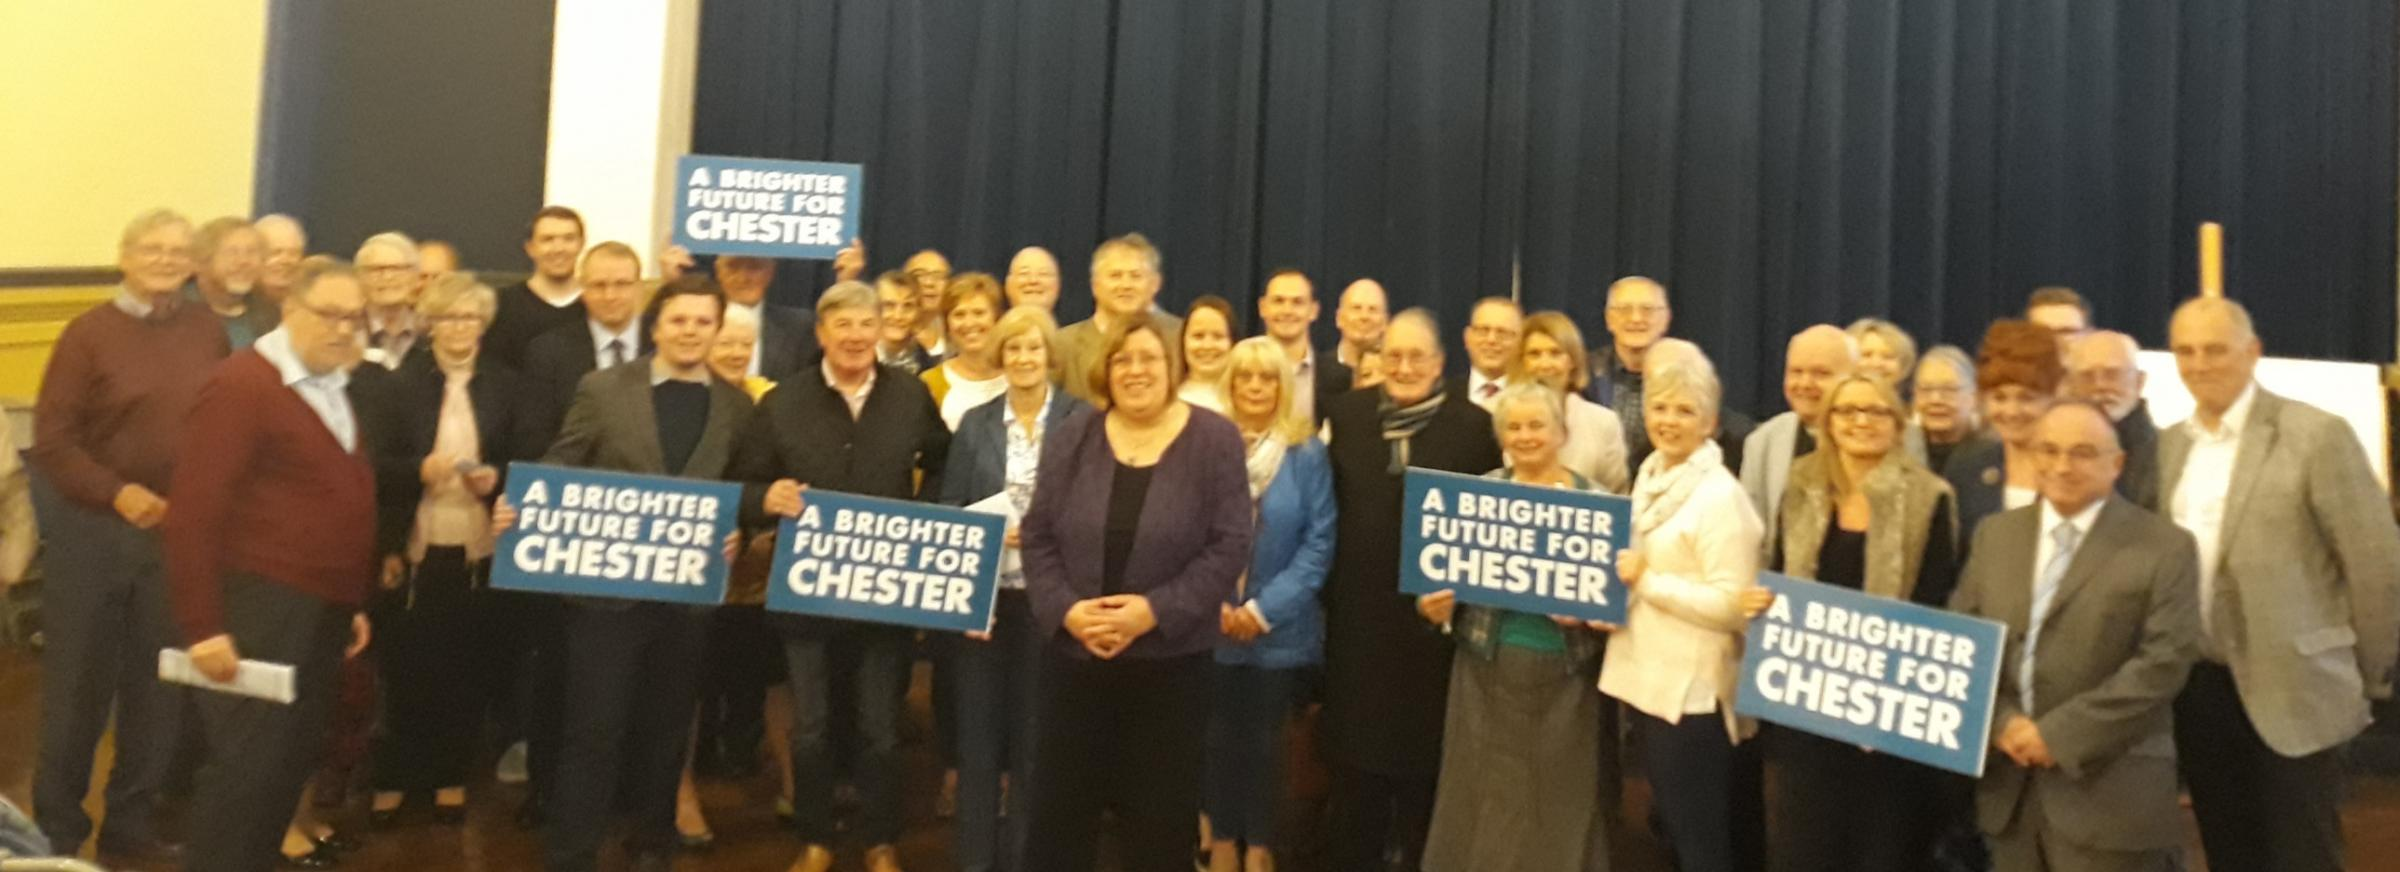 Tories pick their candidate to take on Labour MP Chris Matheson in next General Election